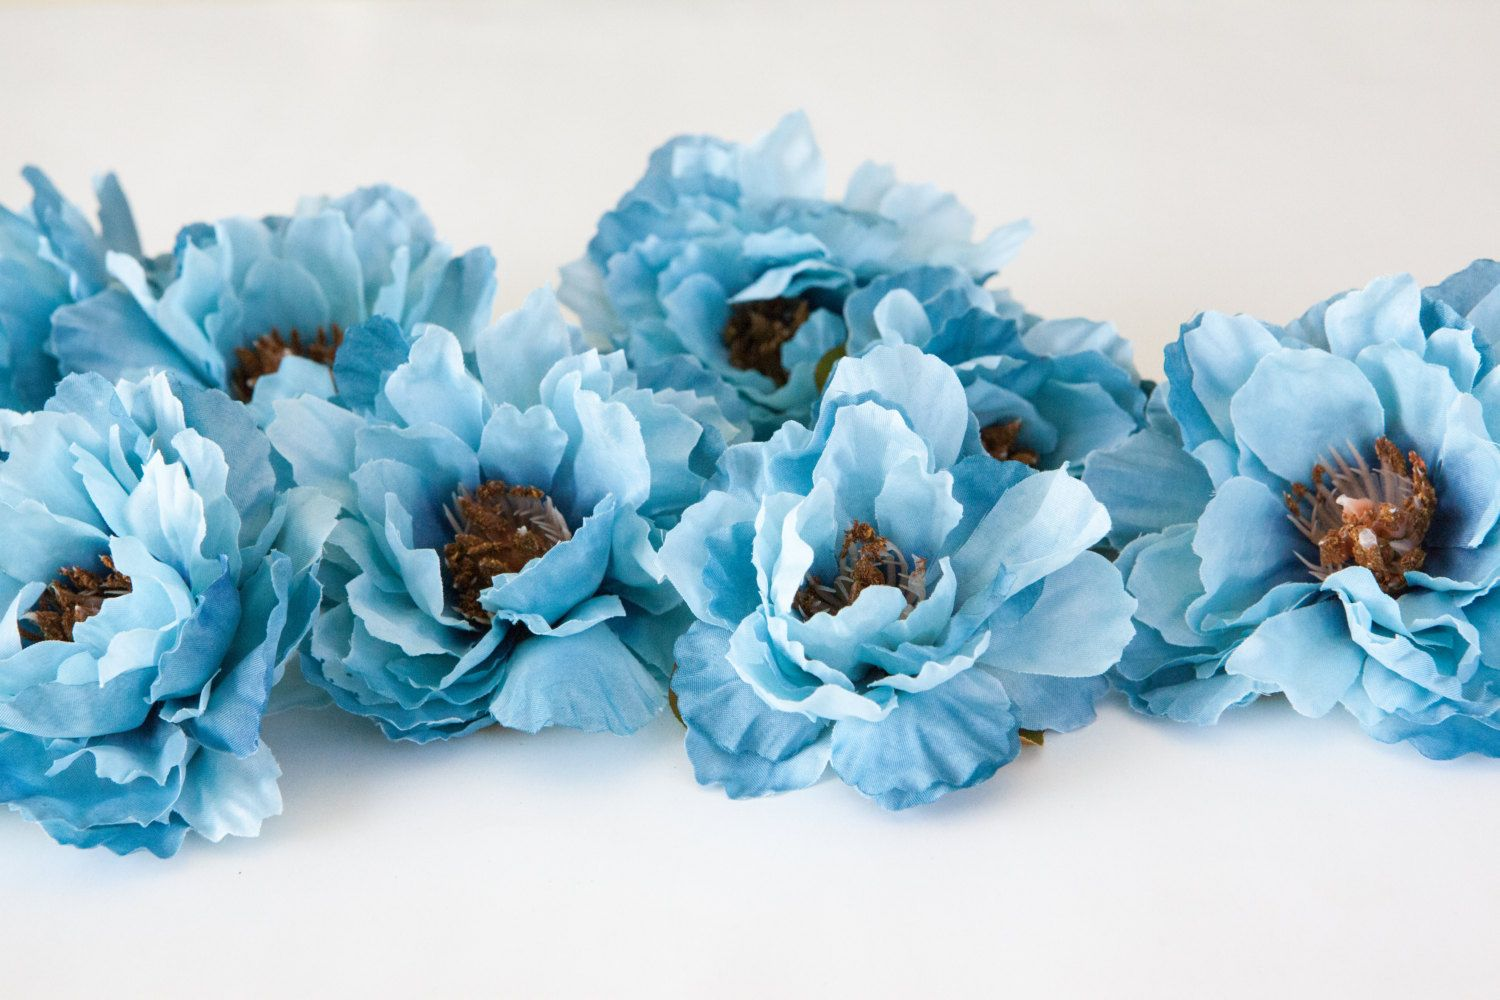 Set of 9 wild peonies in steel blue silk flowers artificial set of 9 wild peonies in steel blue silk flowers artificial flowers read description item 0960 by simplyserrafloral on etsy izmirmasajfo